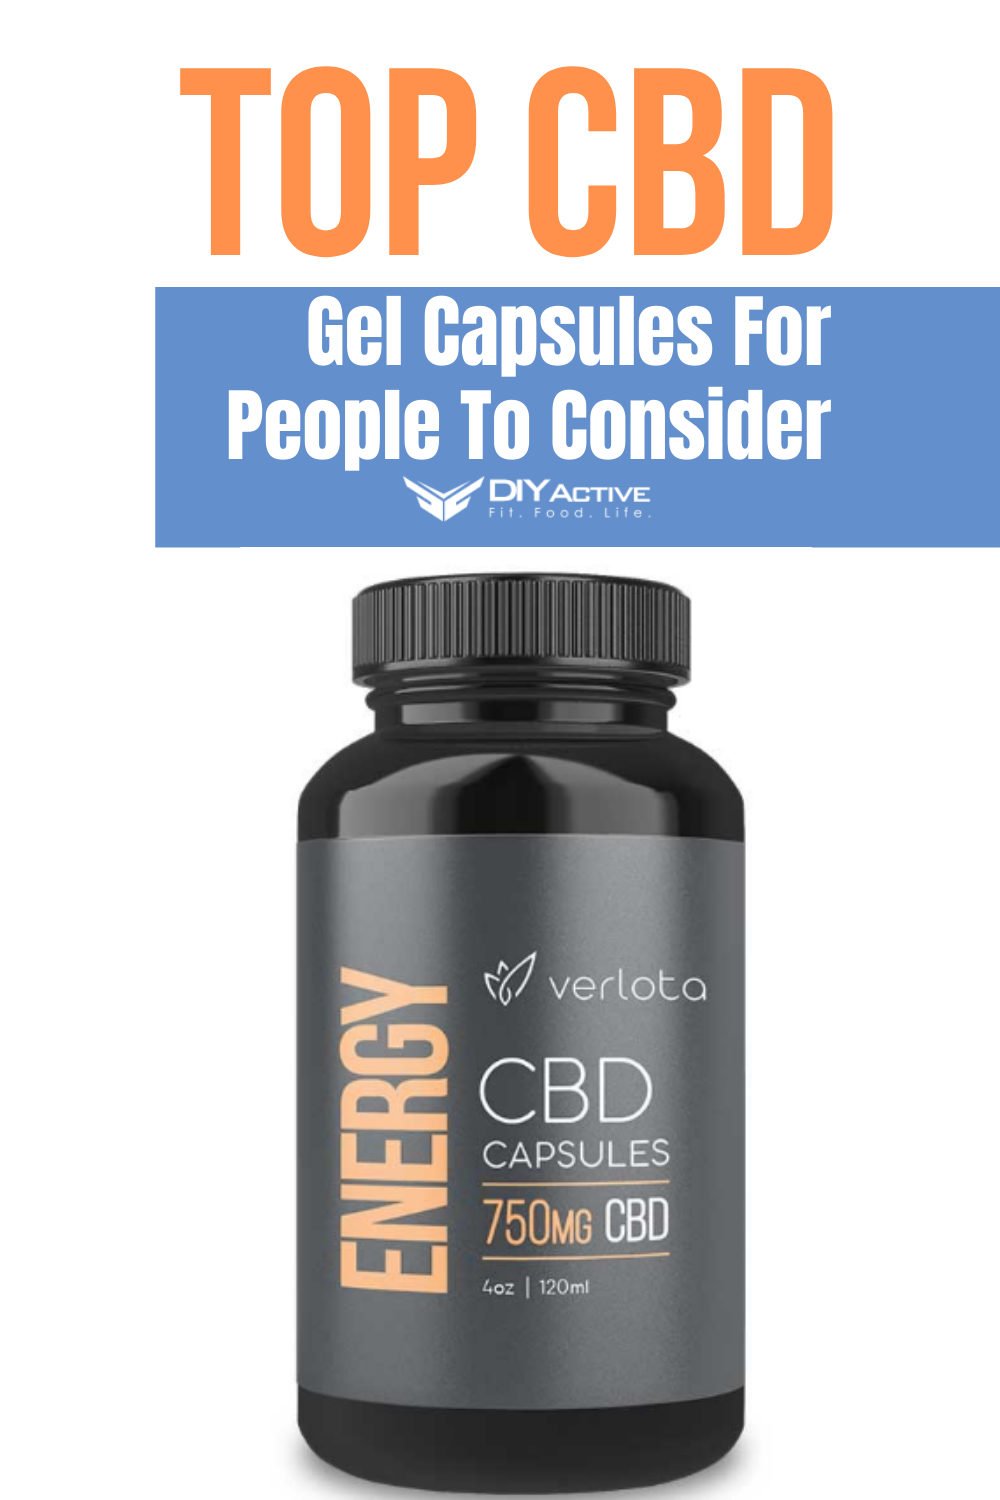 Top CBD Gel Capsules For People To Consider